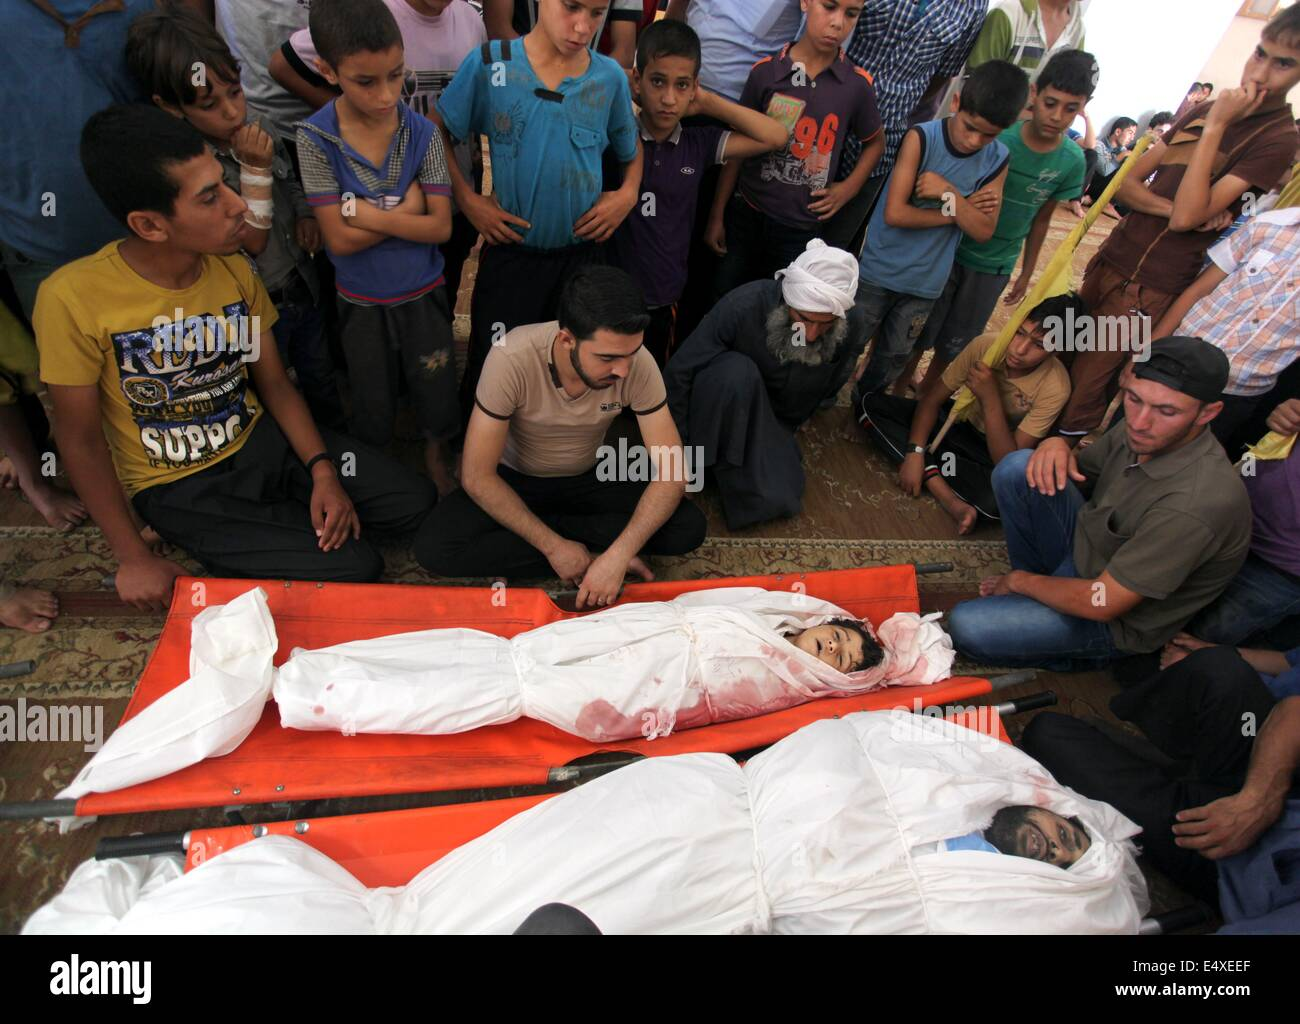 Khan Younis, Gaza Strip, Palestinian Territory. 17th July, 2014. Palestinian mourners mourn over the bodies of four - Stock Image